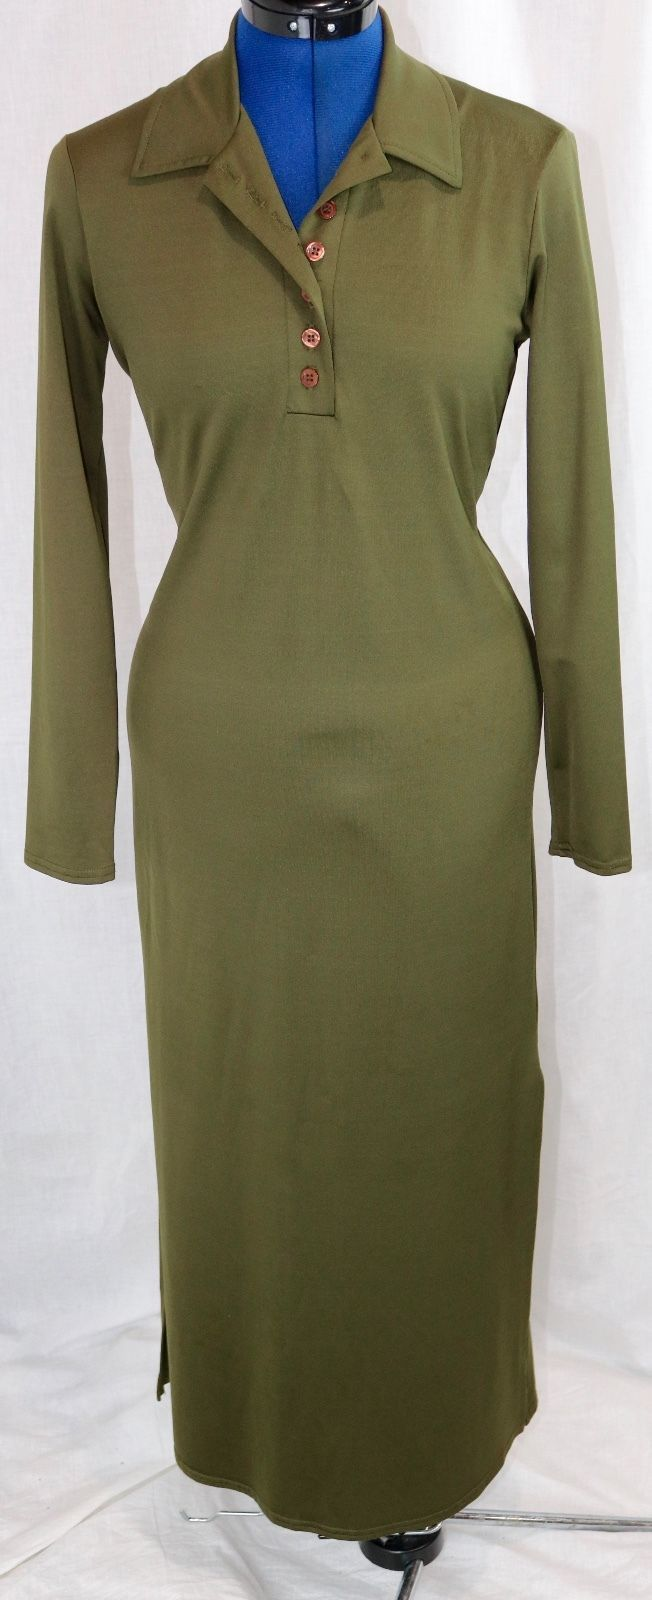 Awesome amazing denial green shirt maxi dress stretch modest full